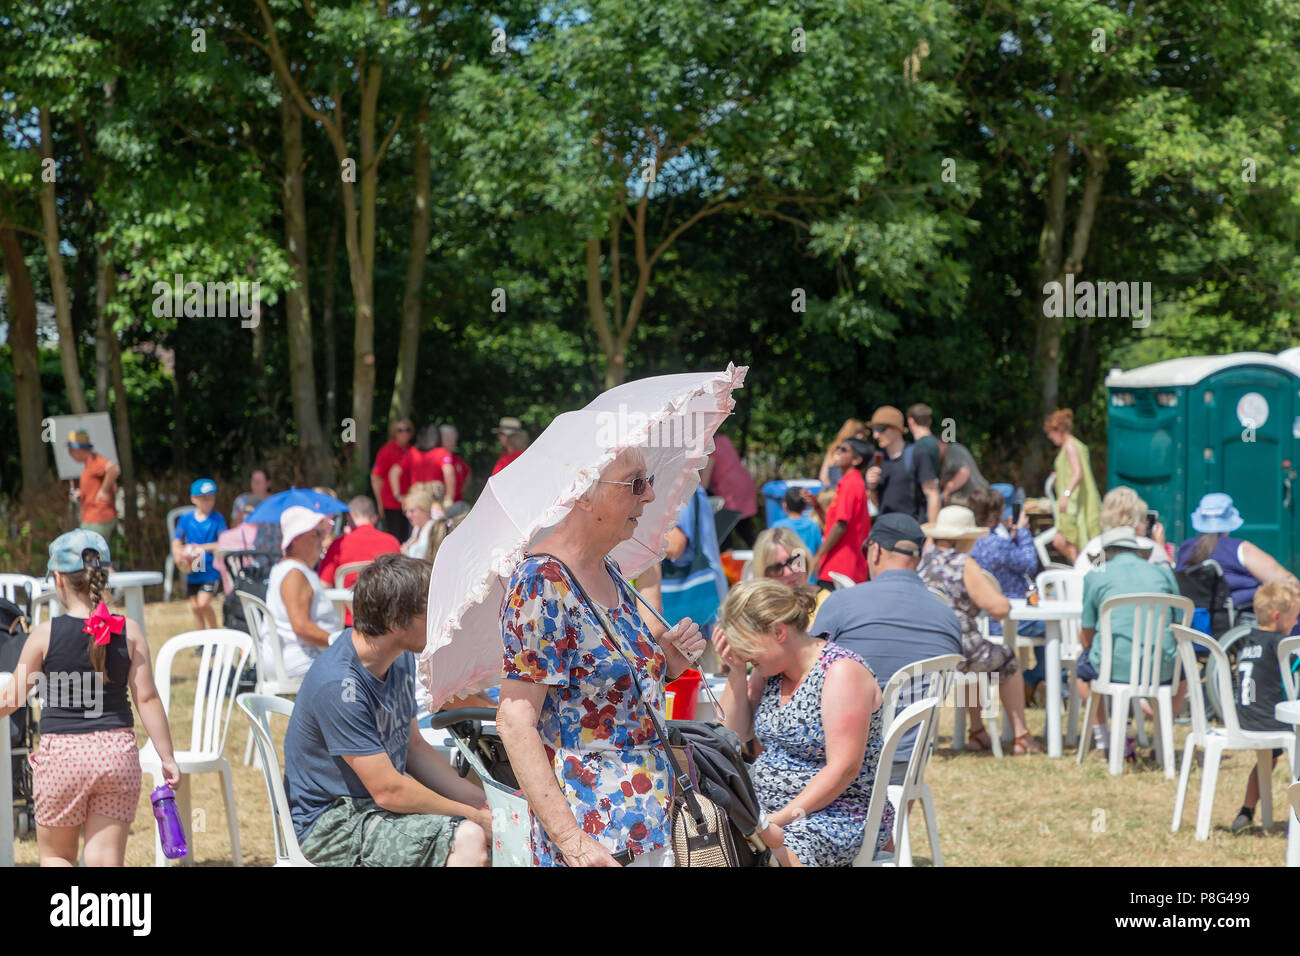 08 July 2018 – Stockton Heath Festival in Cheshire, England, UK, held their eleventh fete on the festival field where hundreds of people protected the Stock Photo